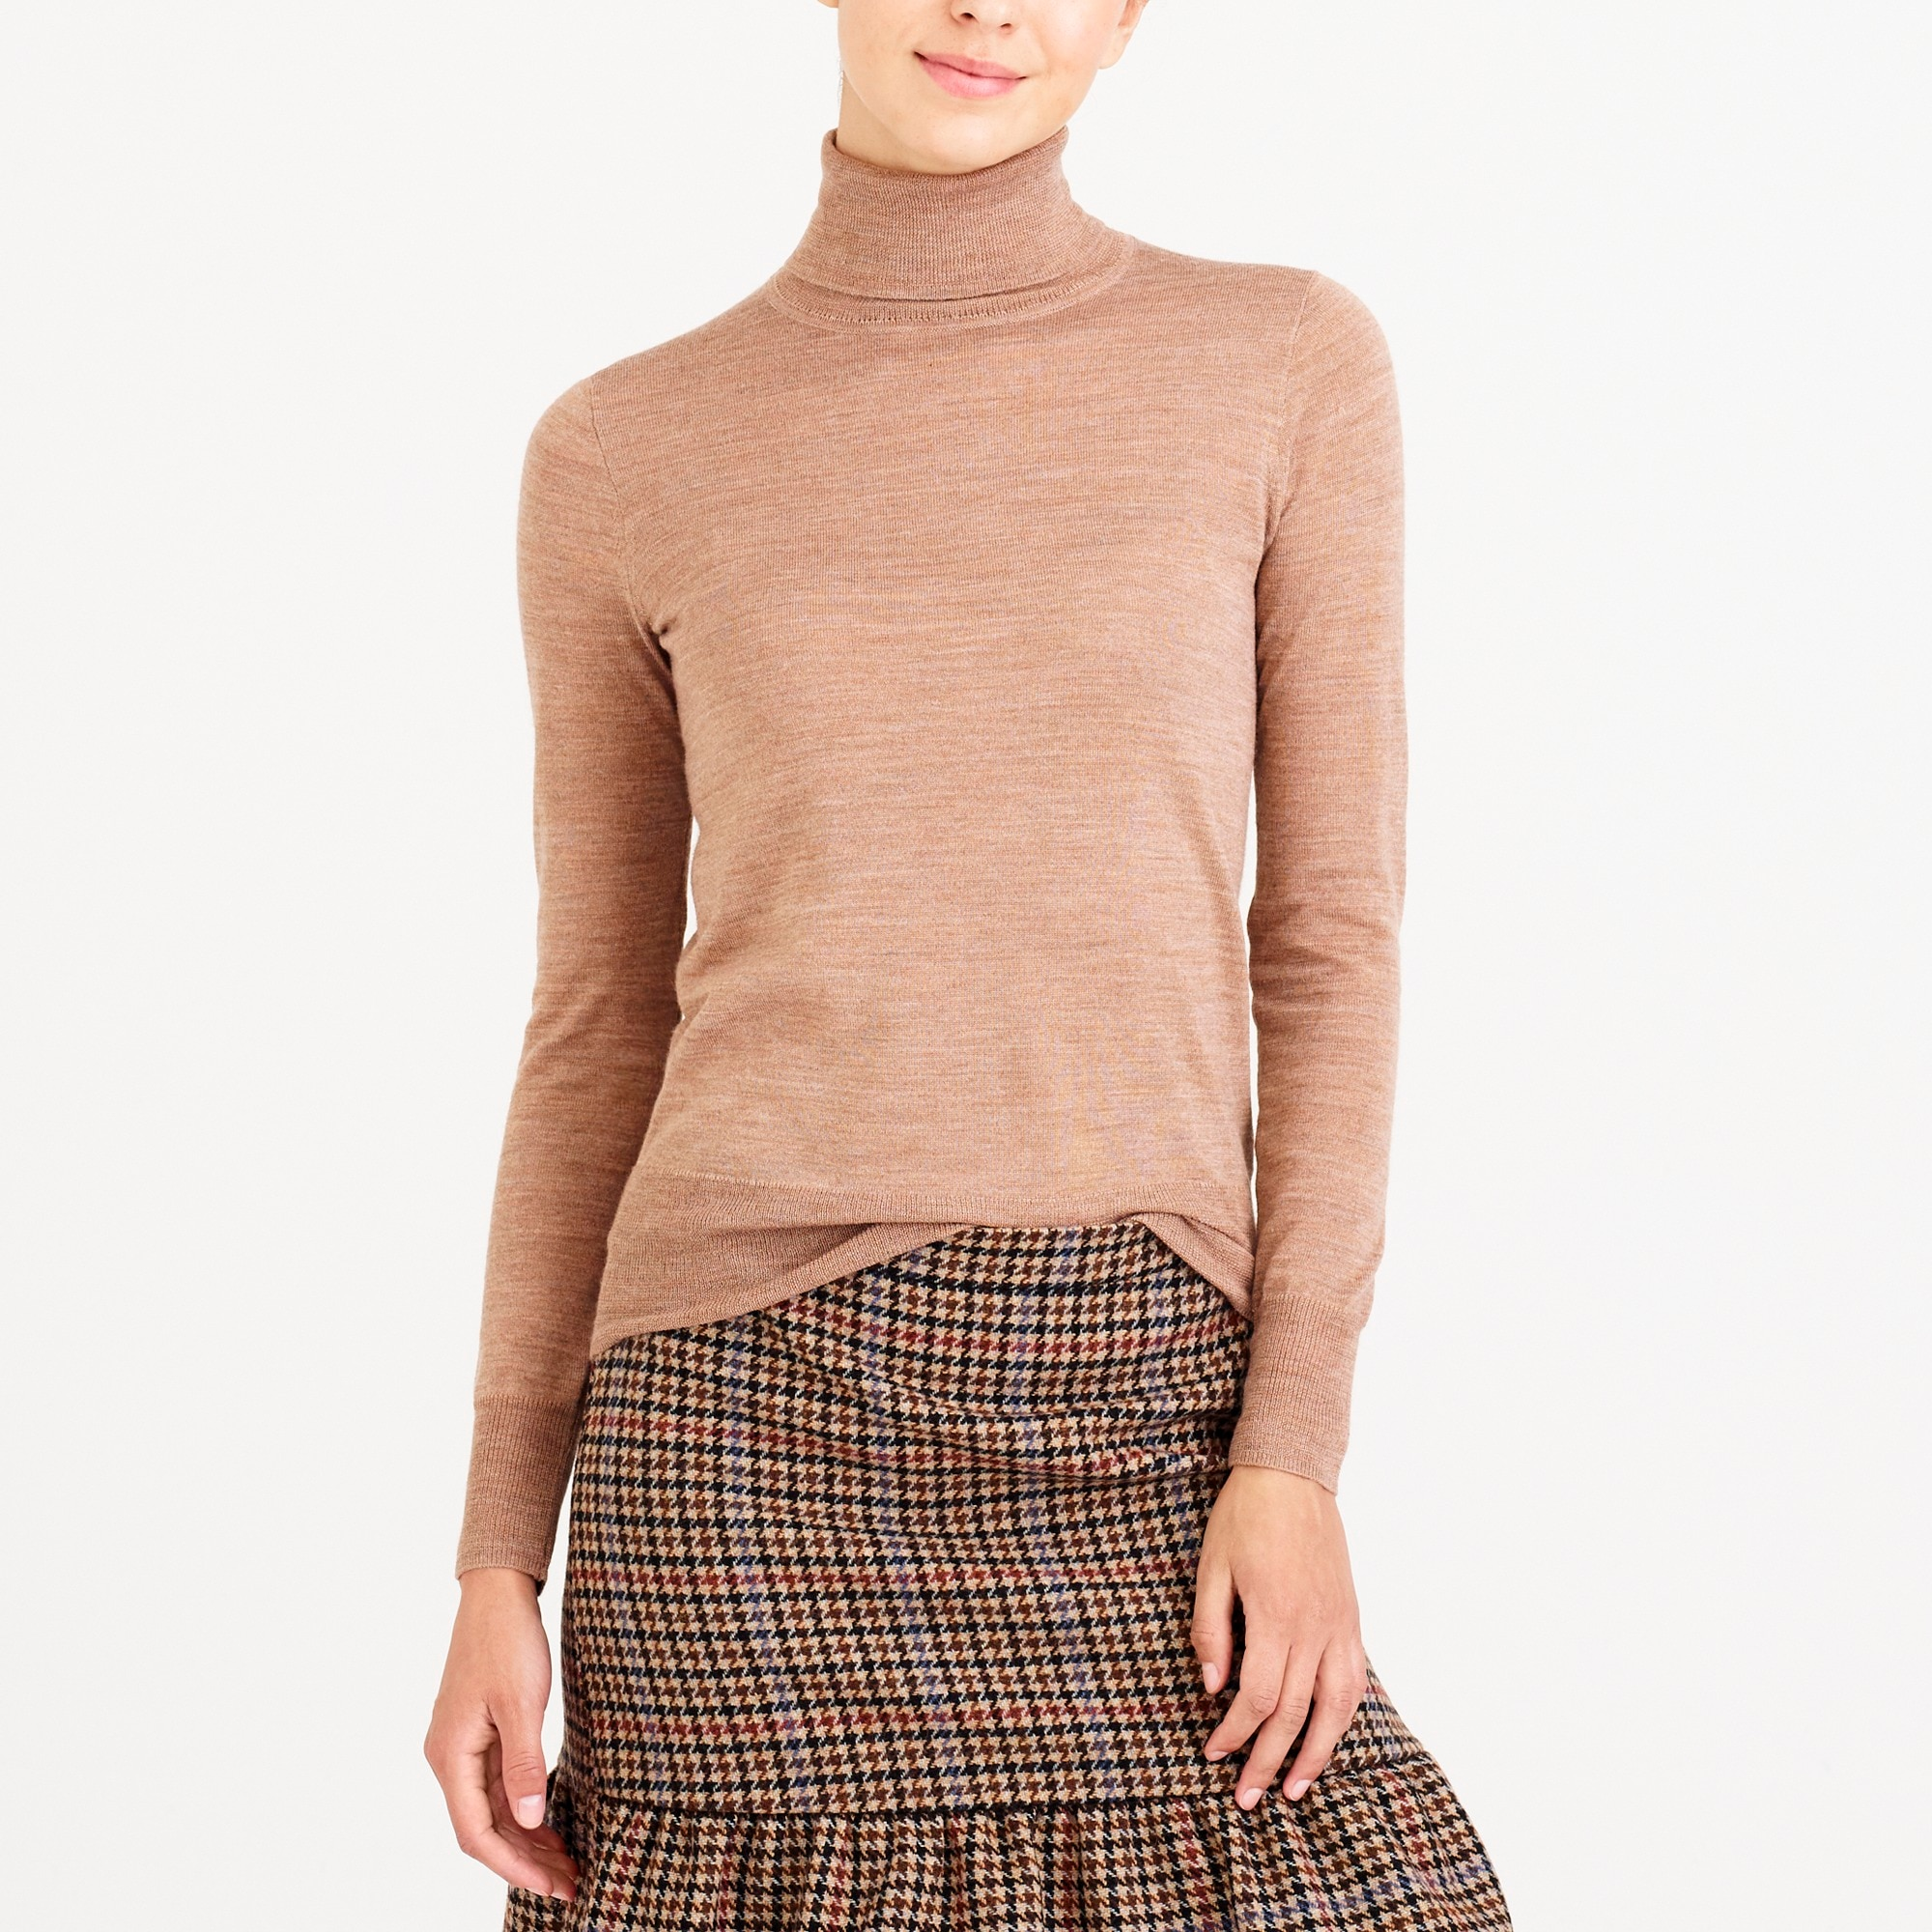 Image 1 for Merino wool turtleneck sweater